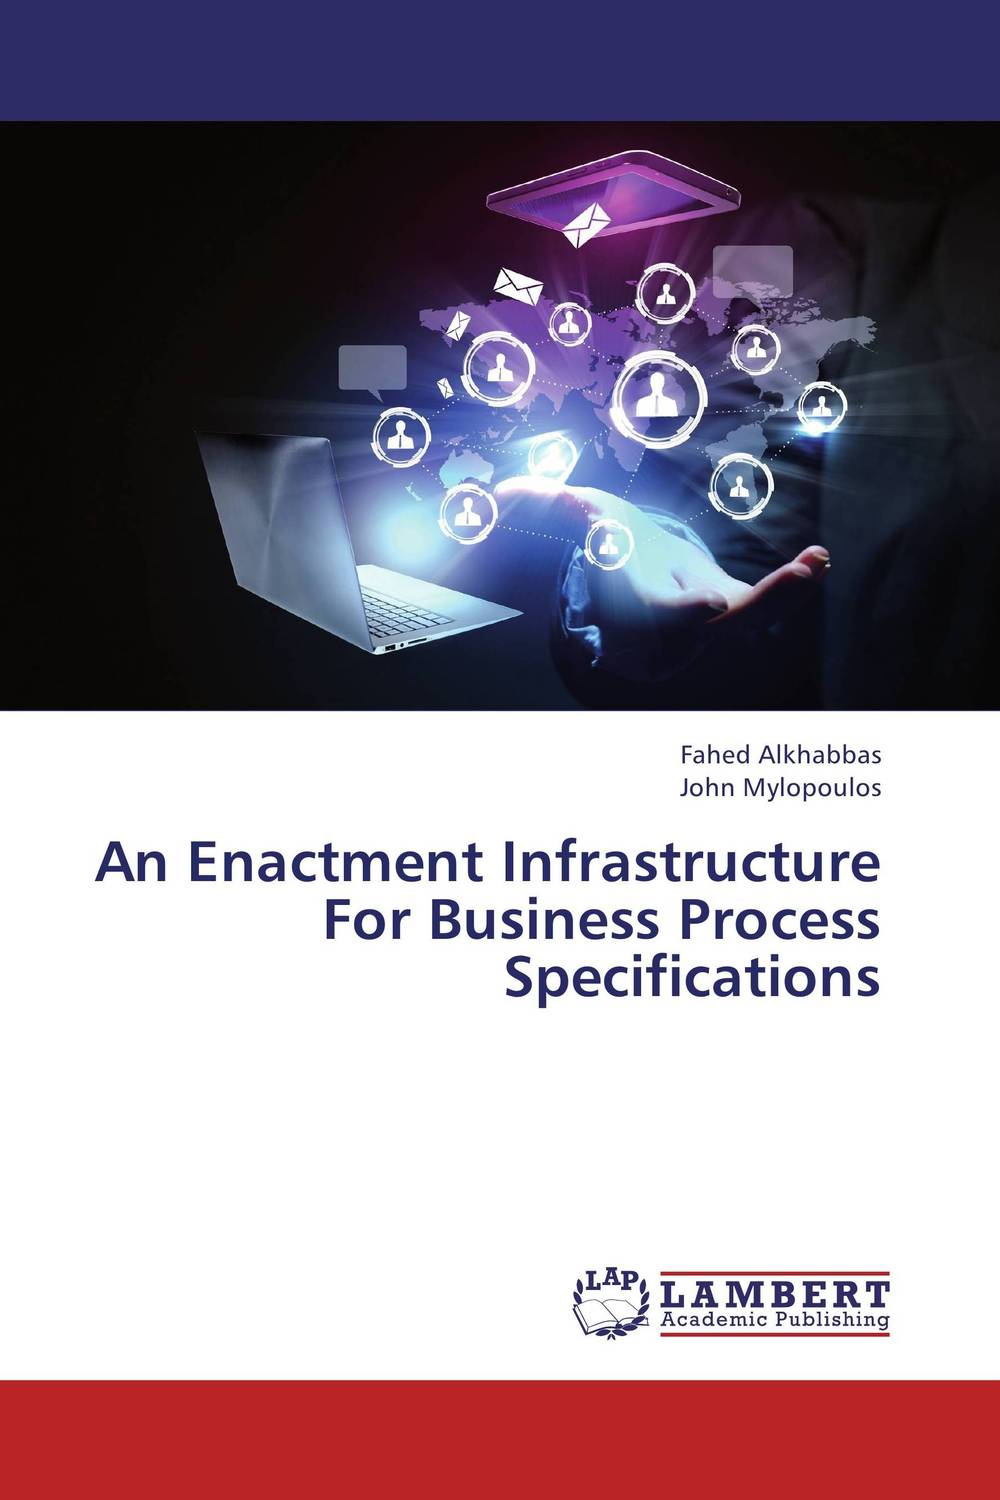 An Enactment Infrastructure For Business Process Specifications multi perspectives business process and workflow modelling